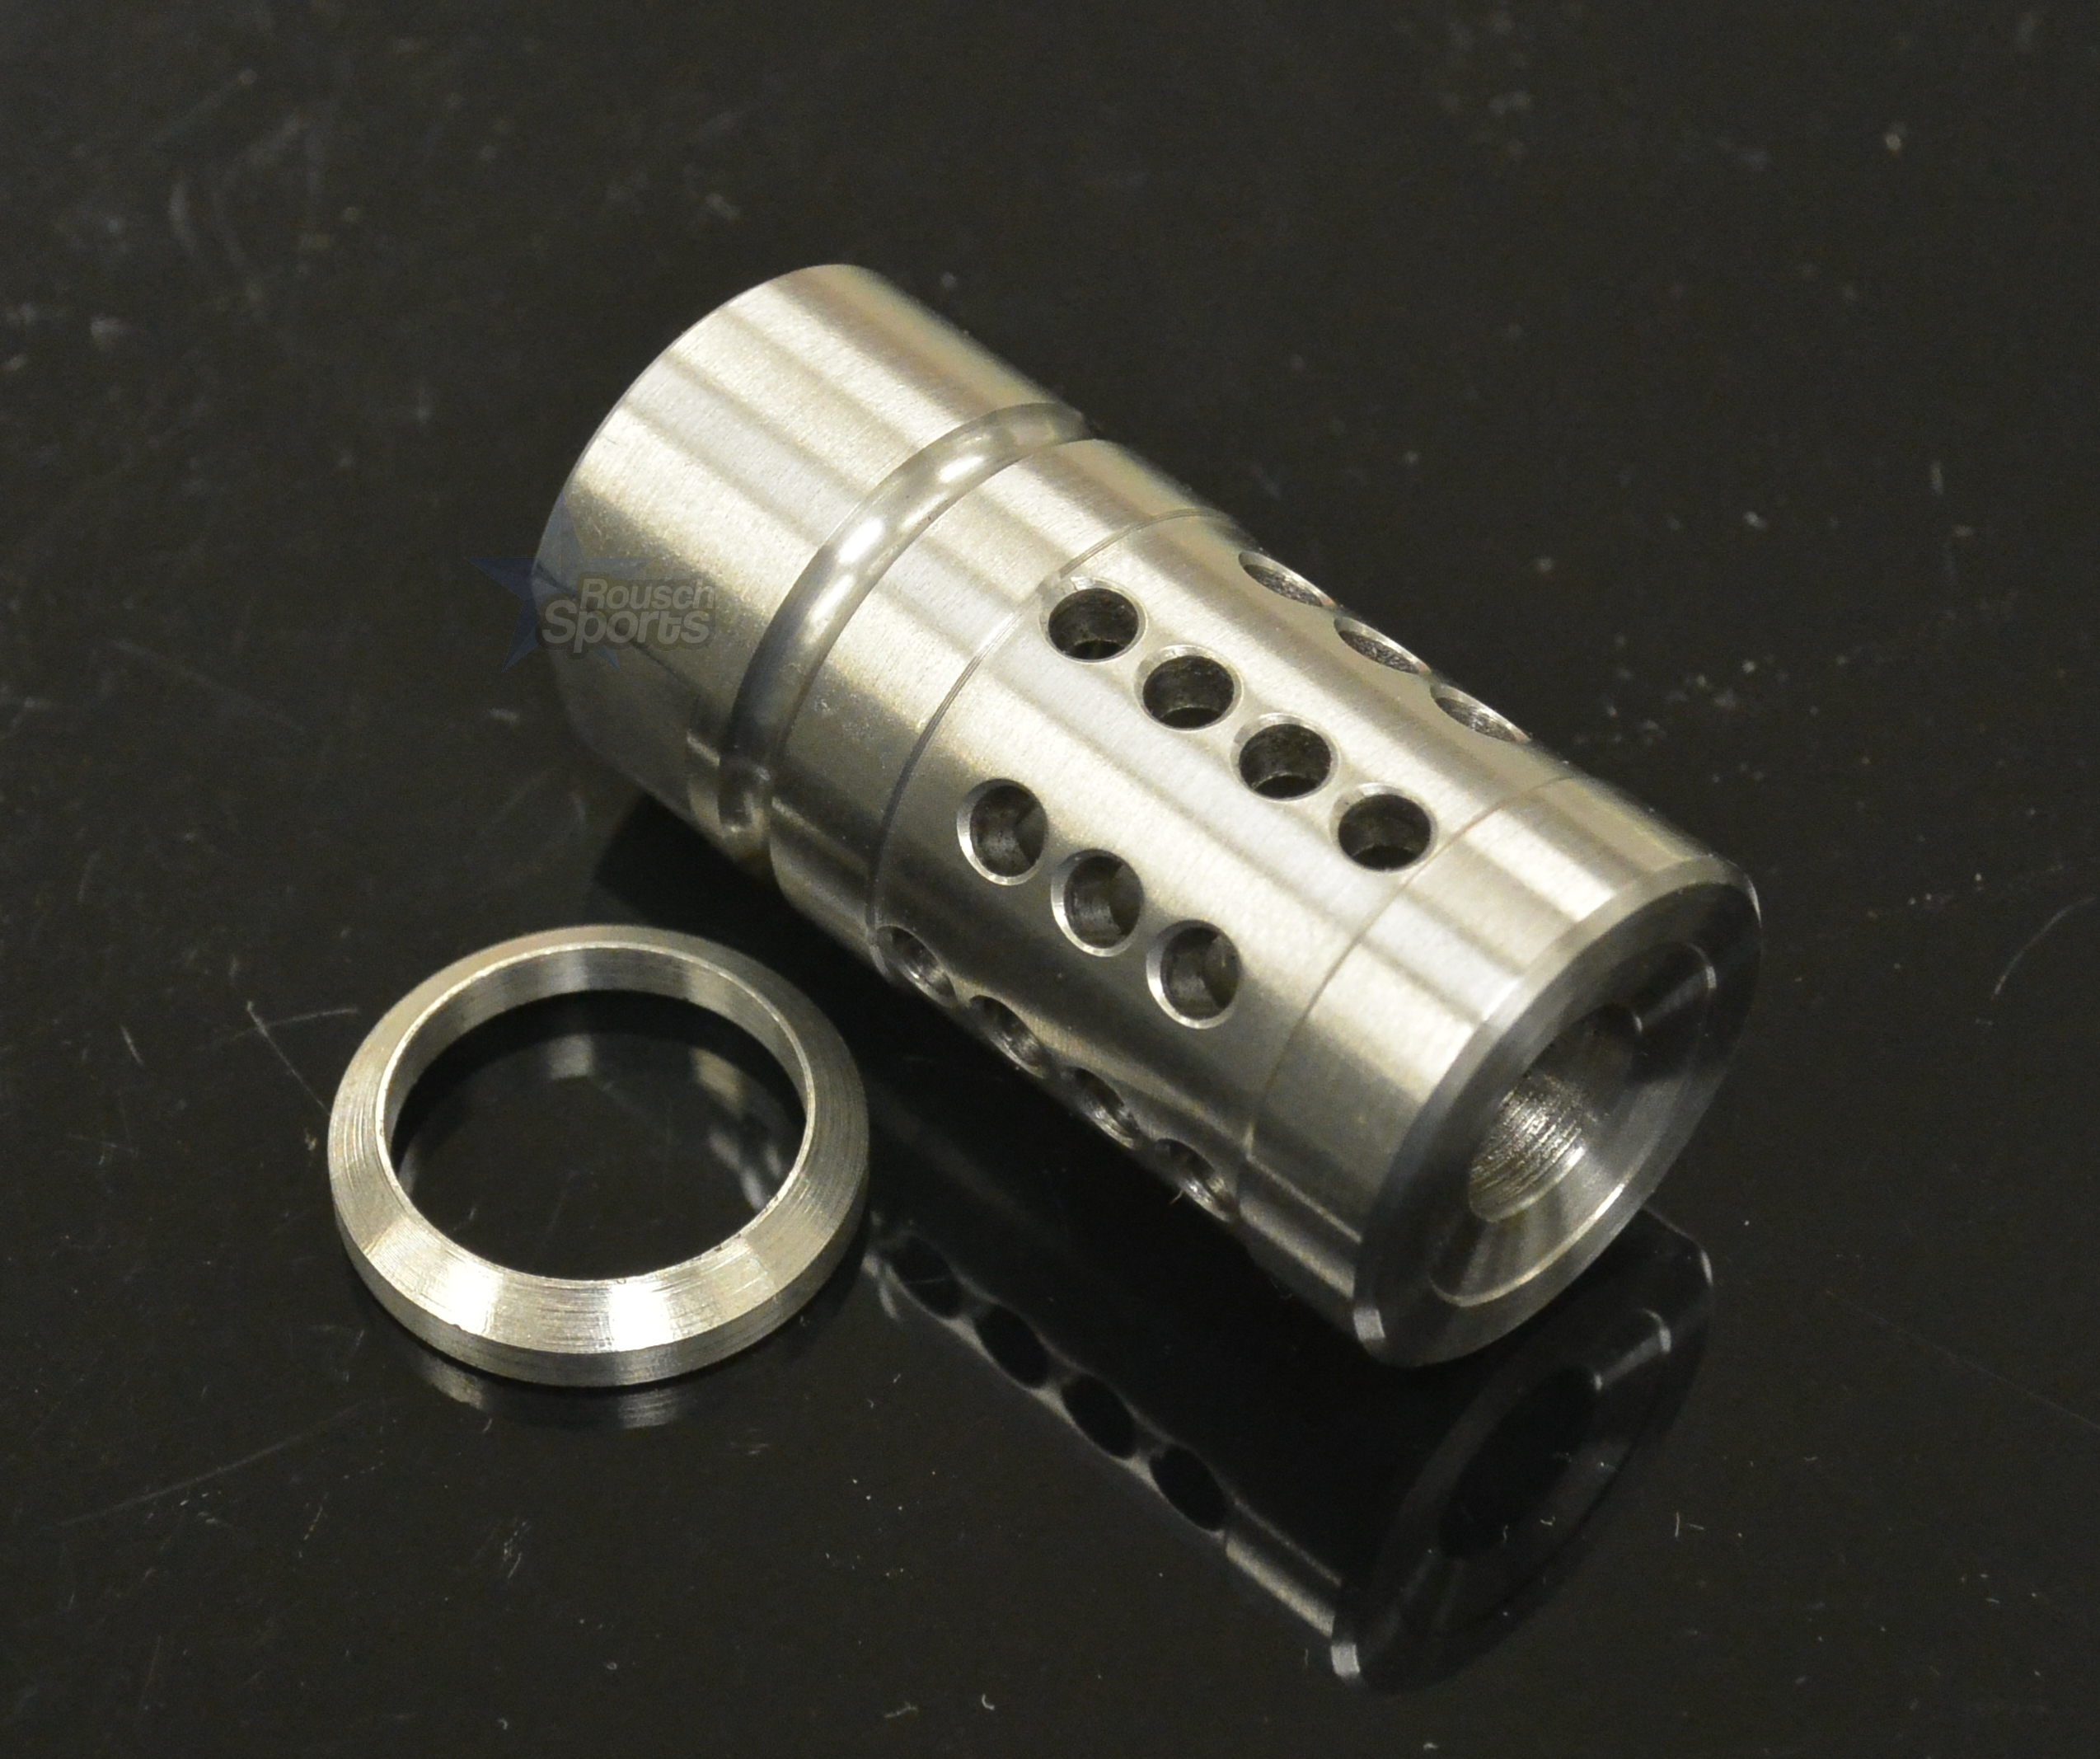 Fxc shorty stainless steel muzzle brake compensator a style